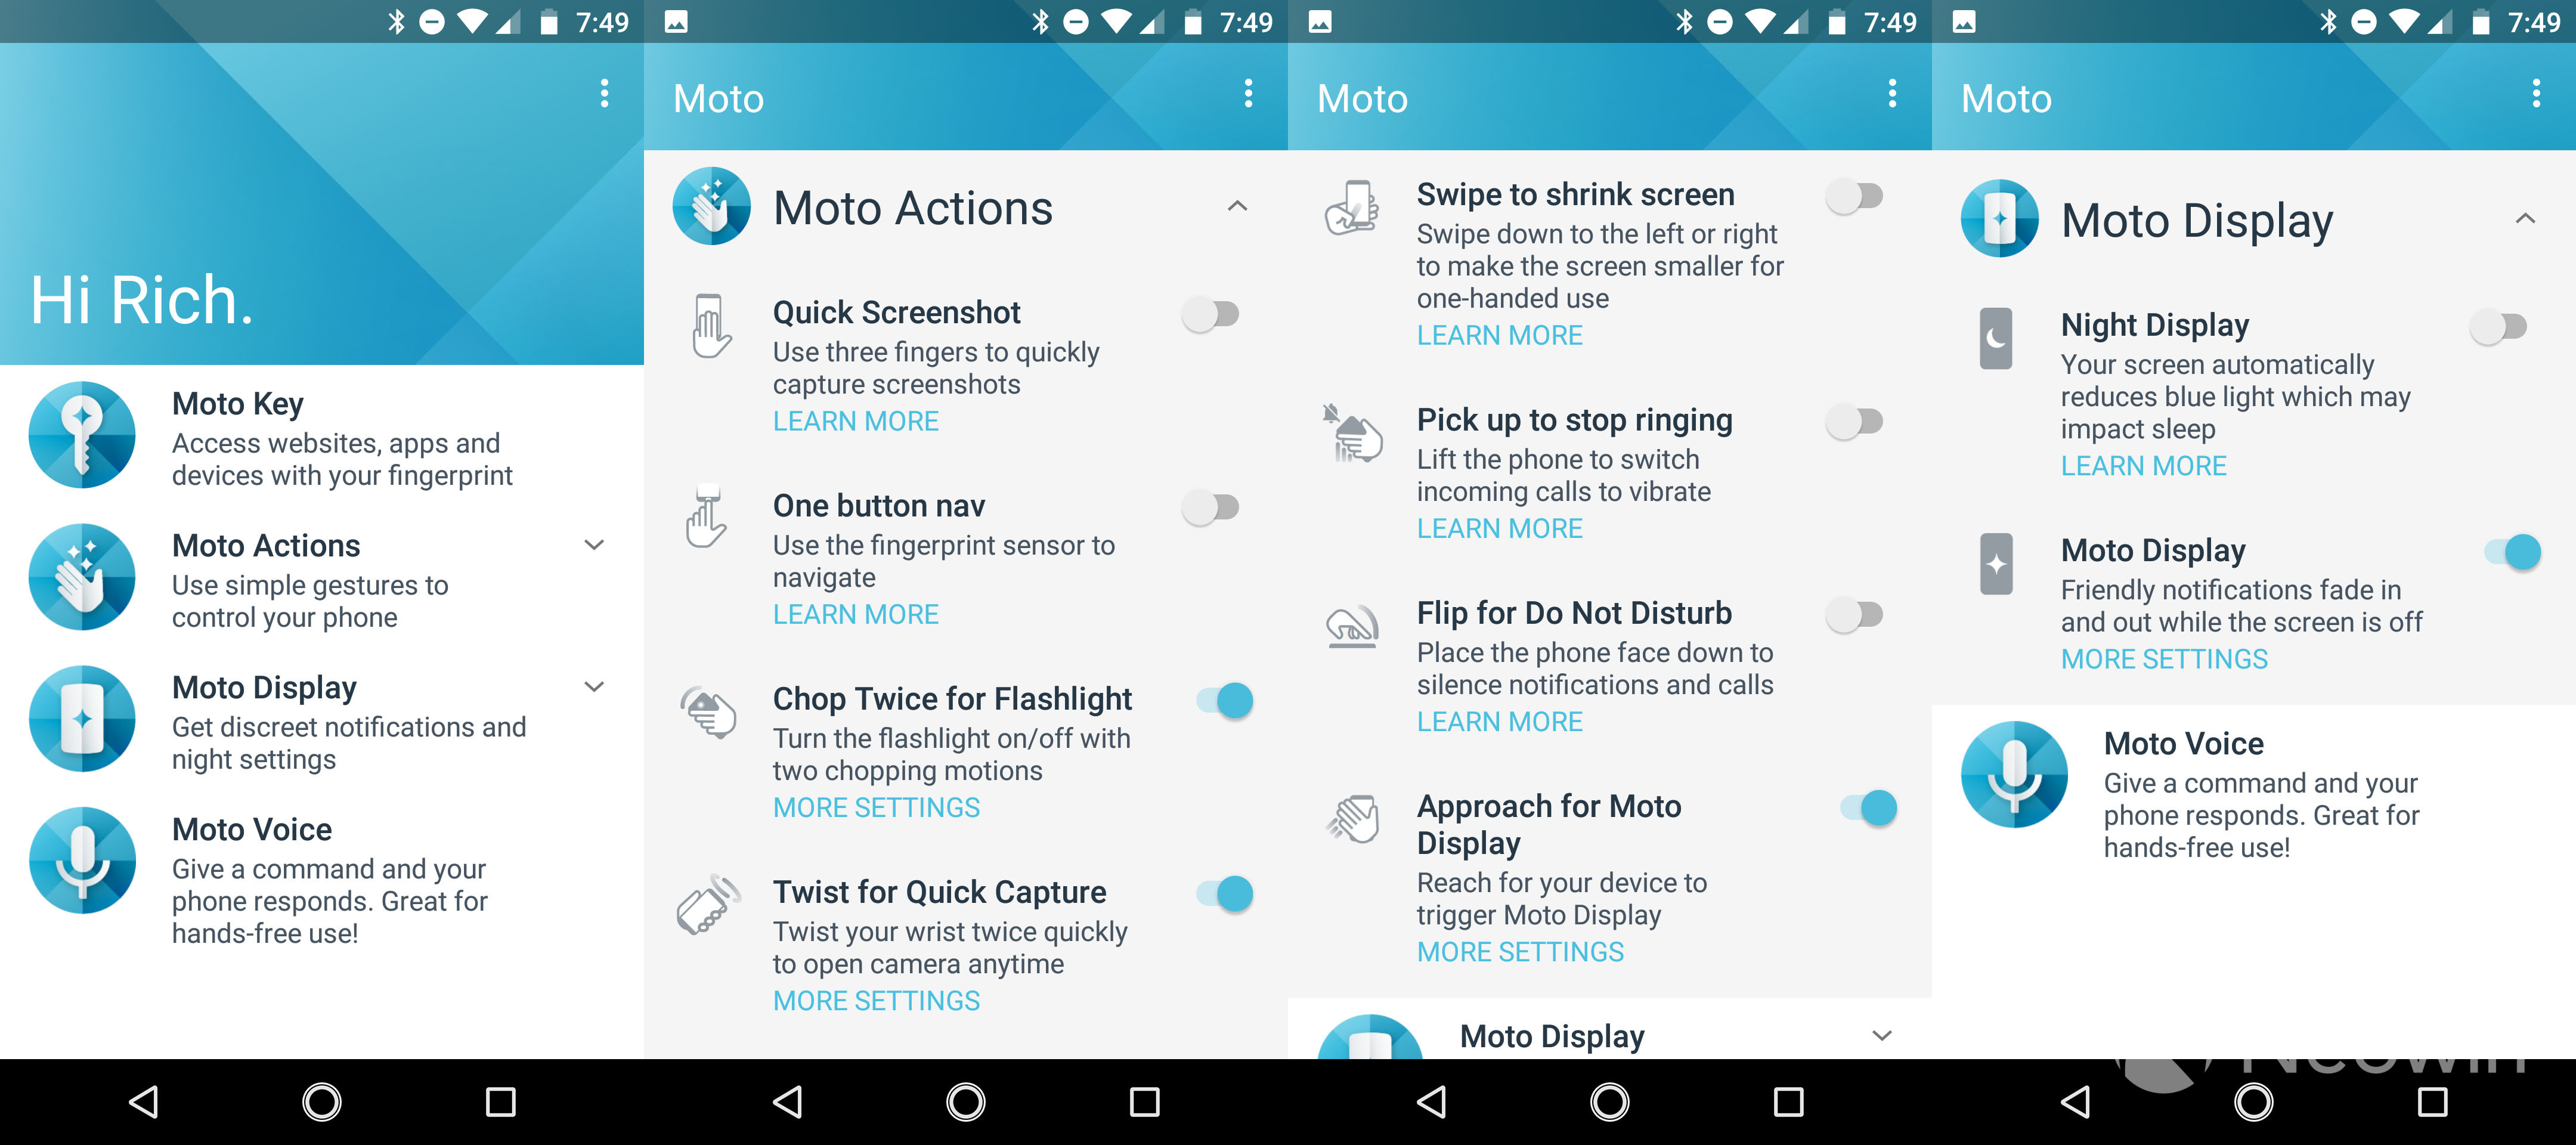 Moto X4 review: Project Fi in a sleek, affordable package - Neowin